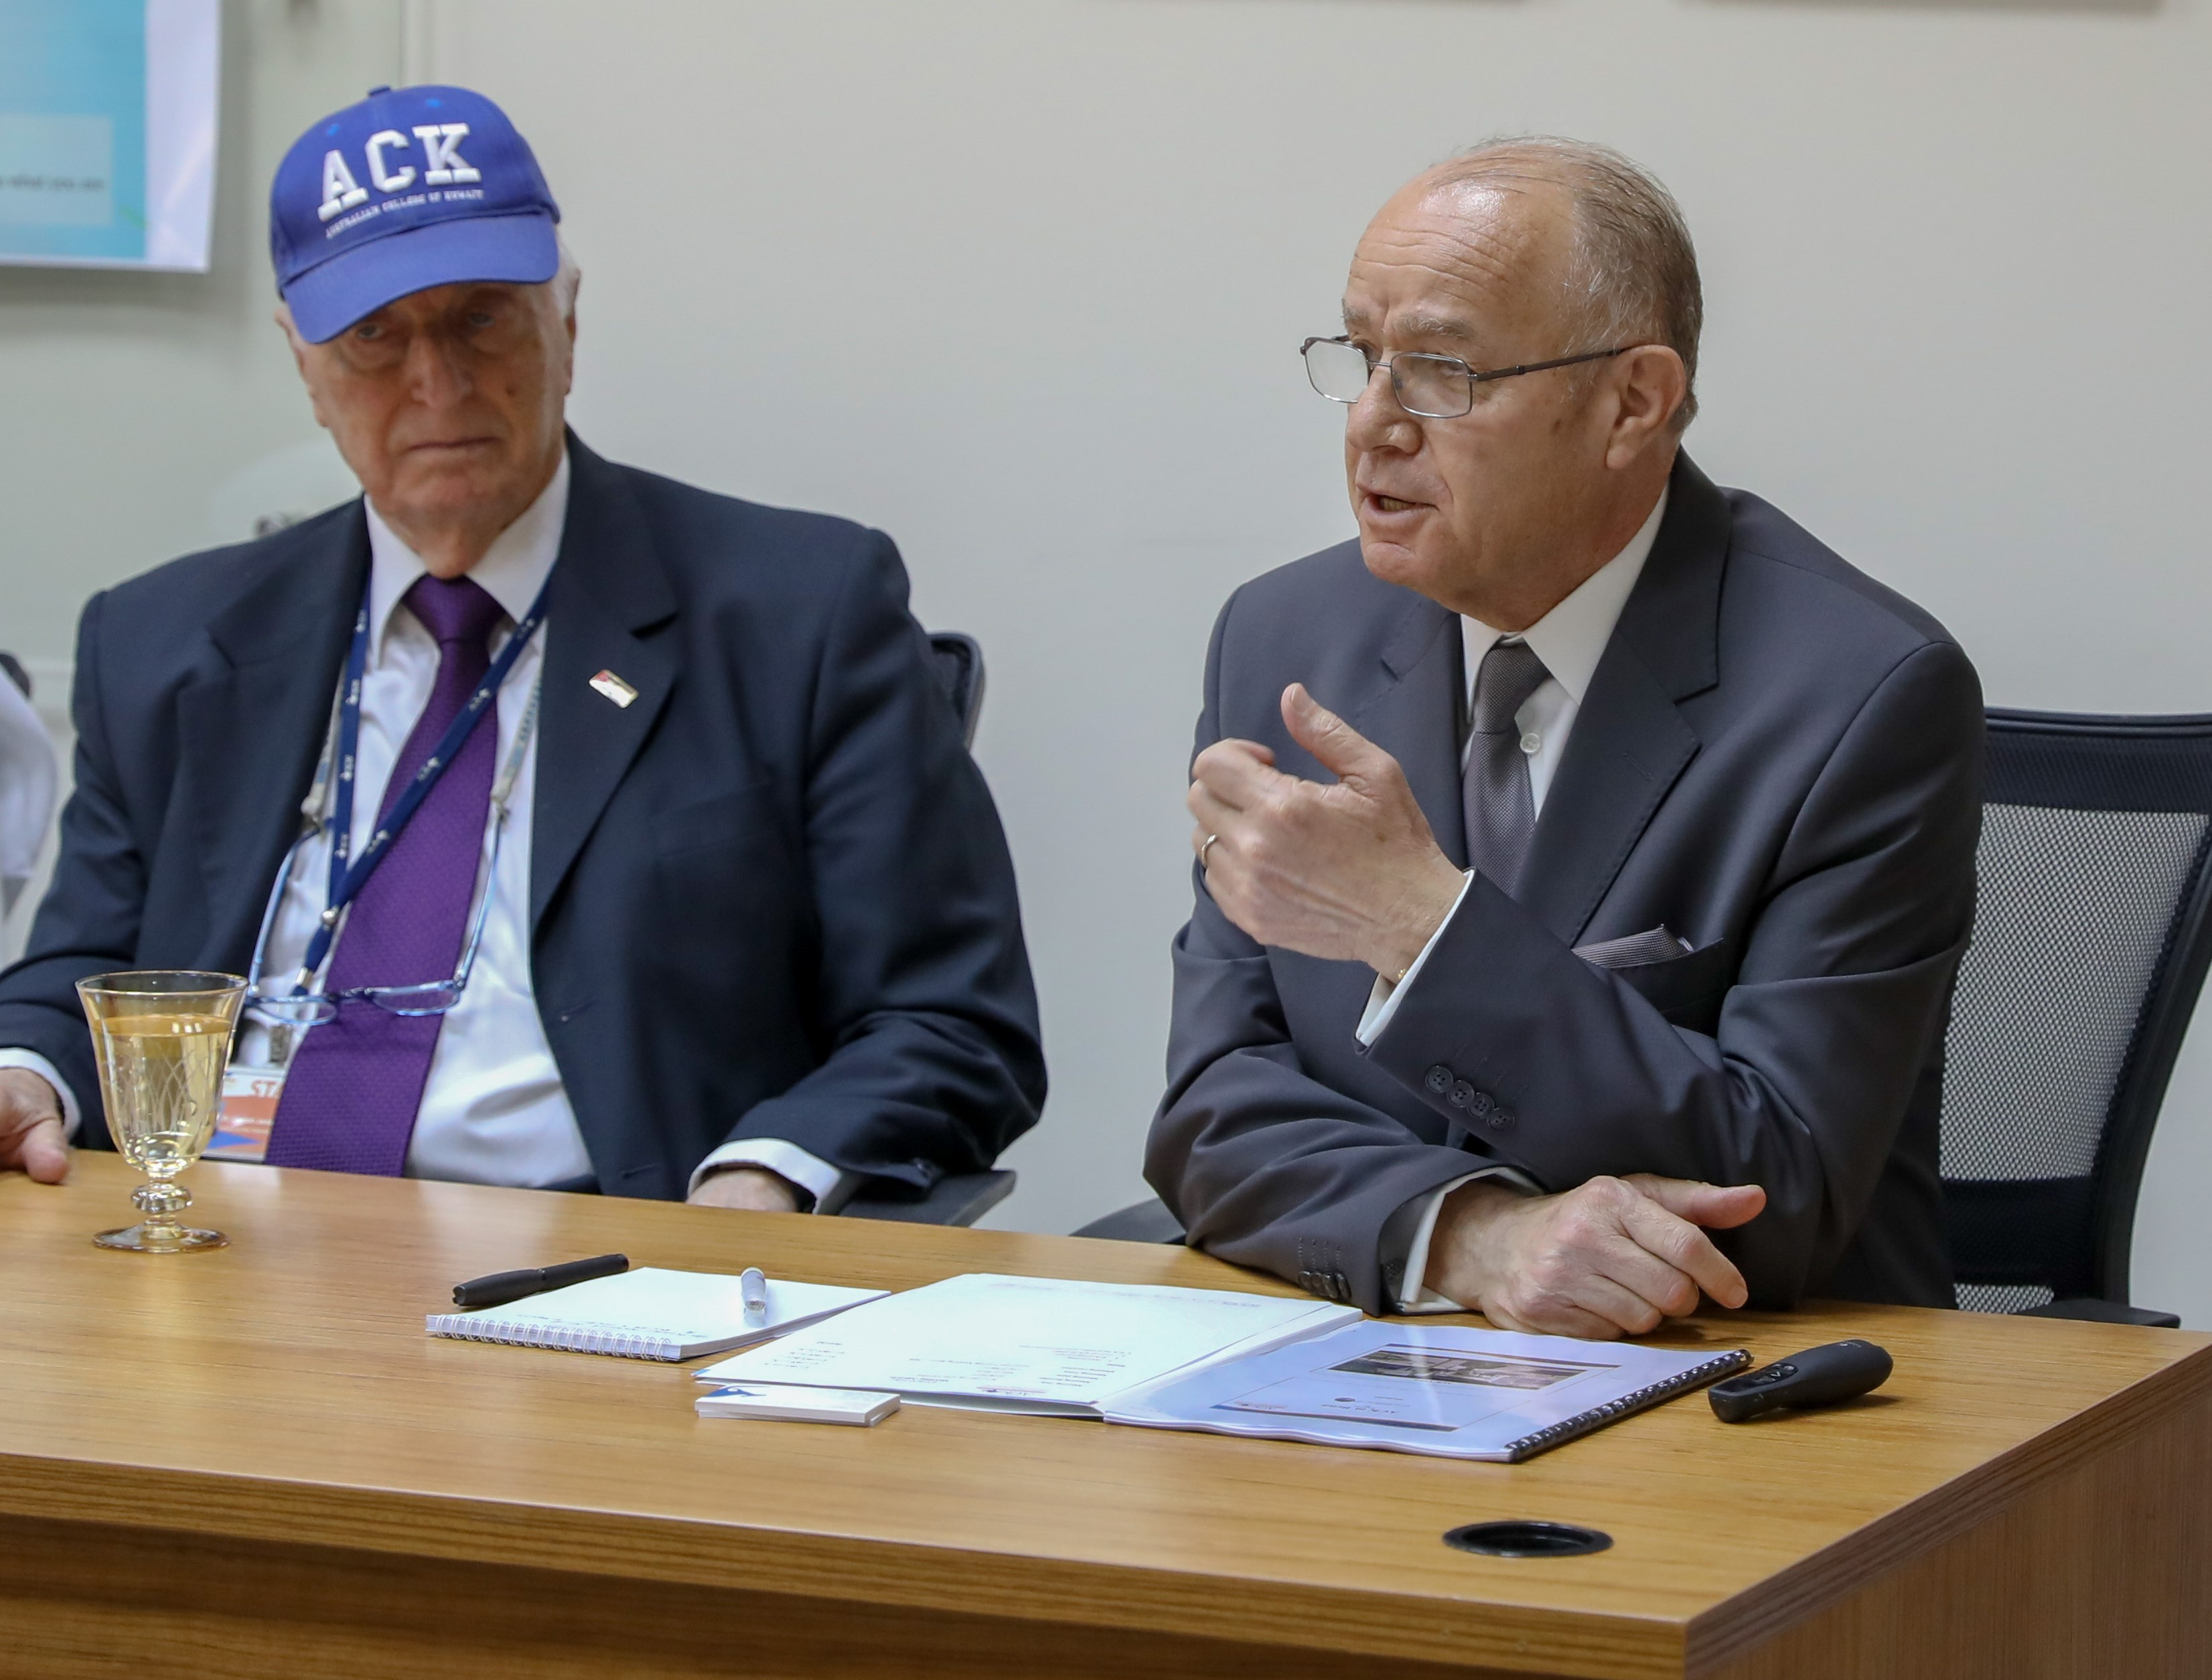 ACK and KNFSME Renew Collaboration Agreement